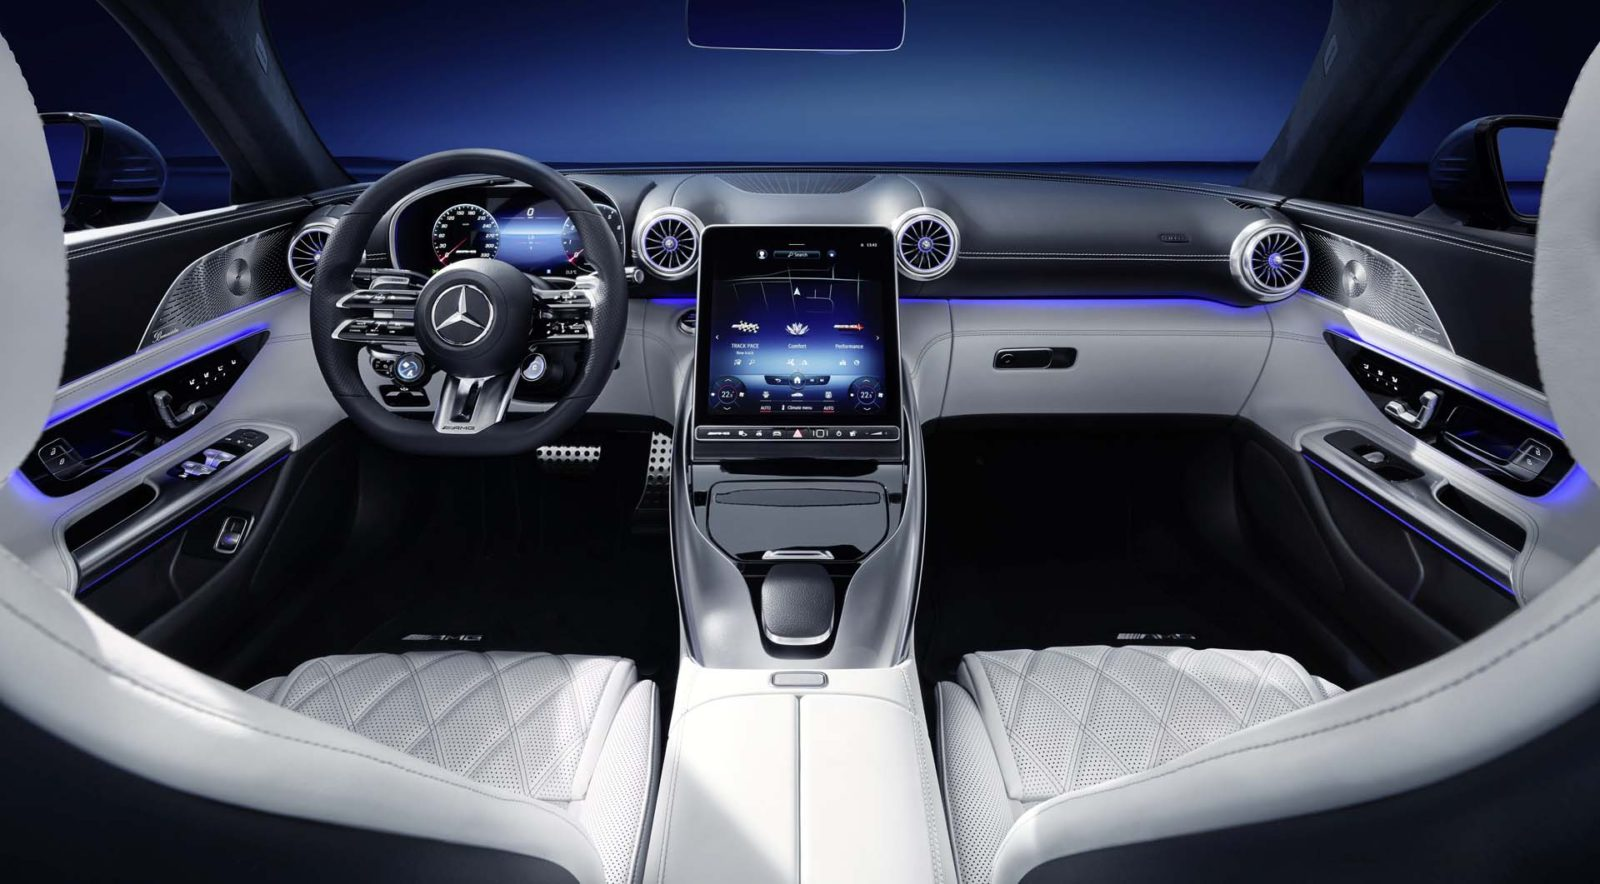 2022-mercedes-benz-amg-sl-roadster's-high-tech-cabin-revealed